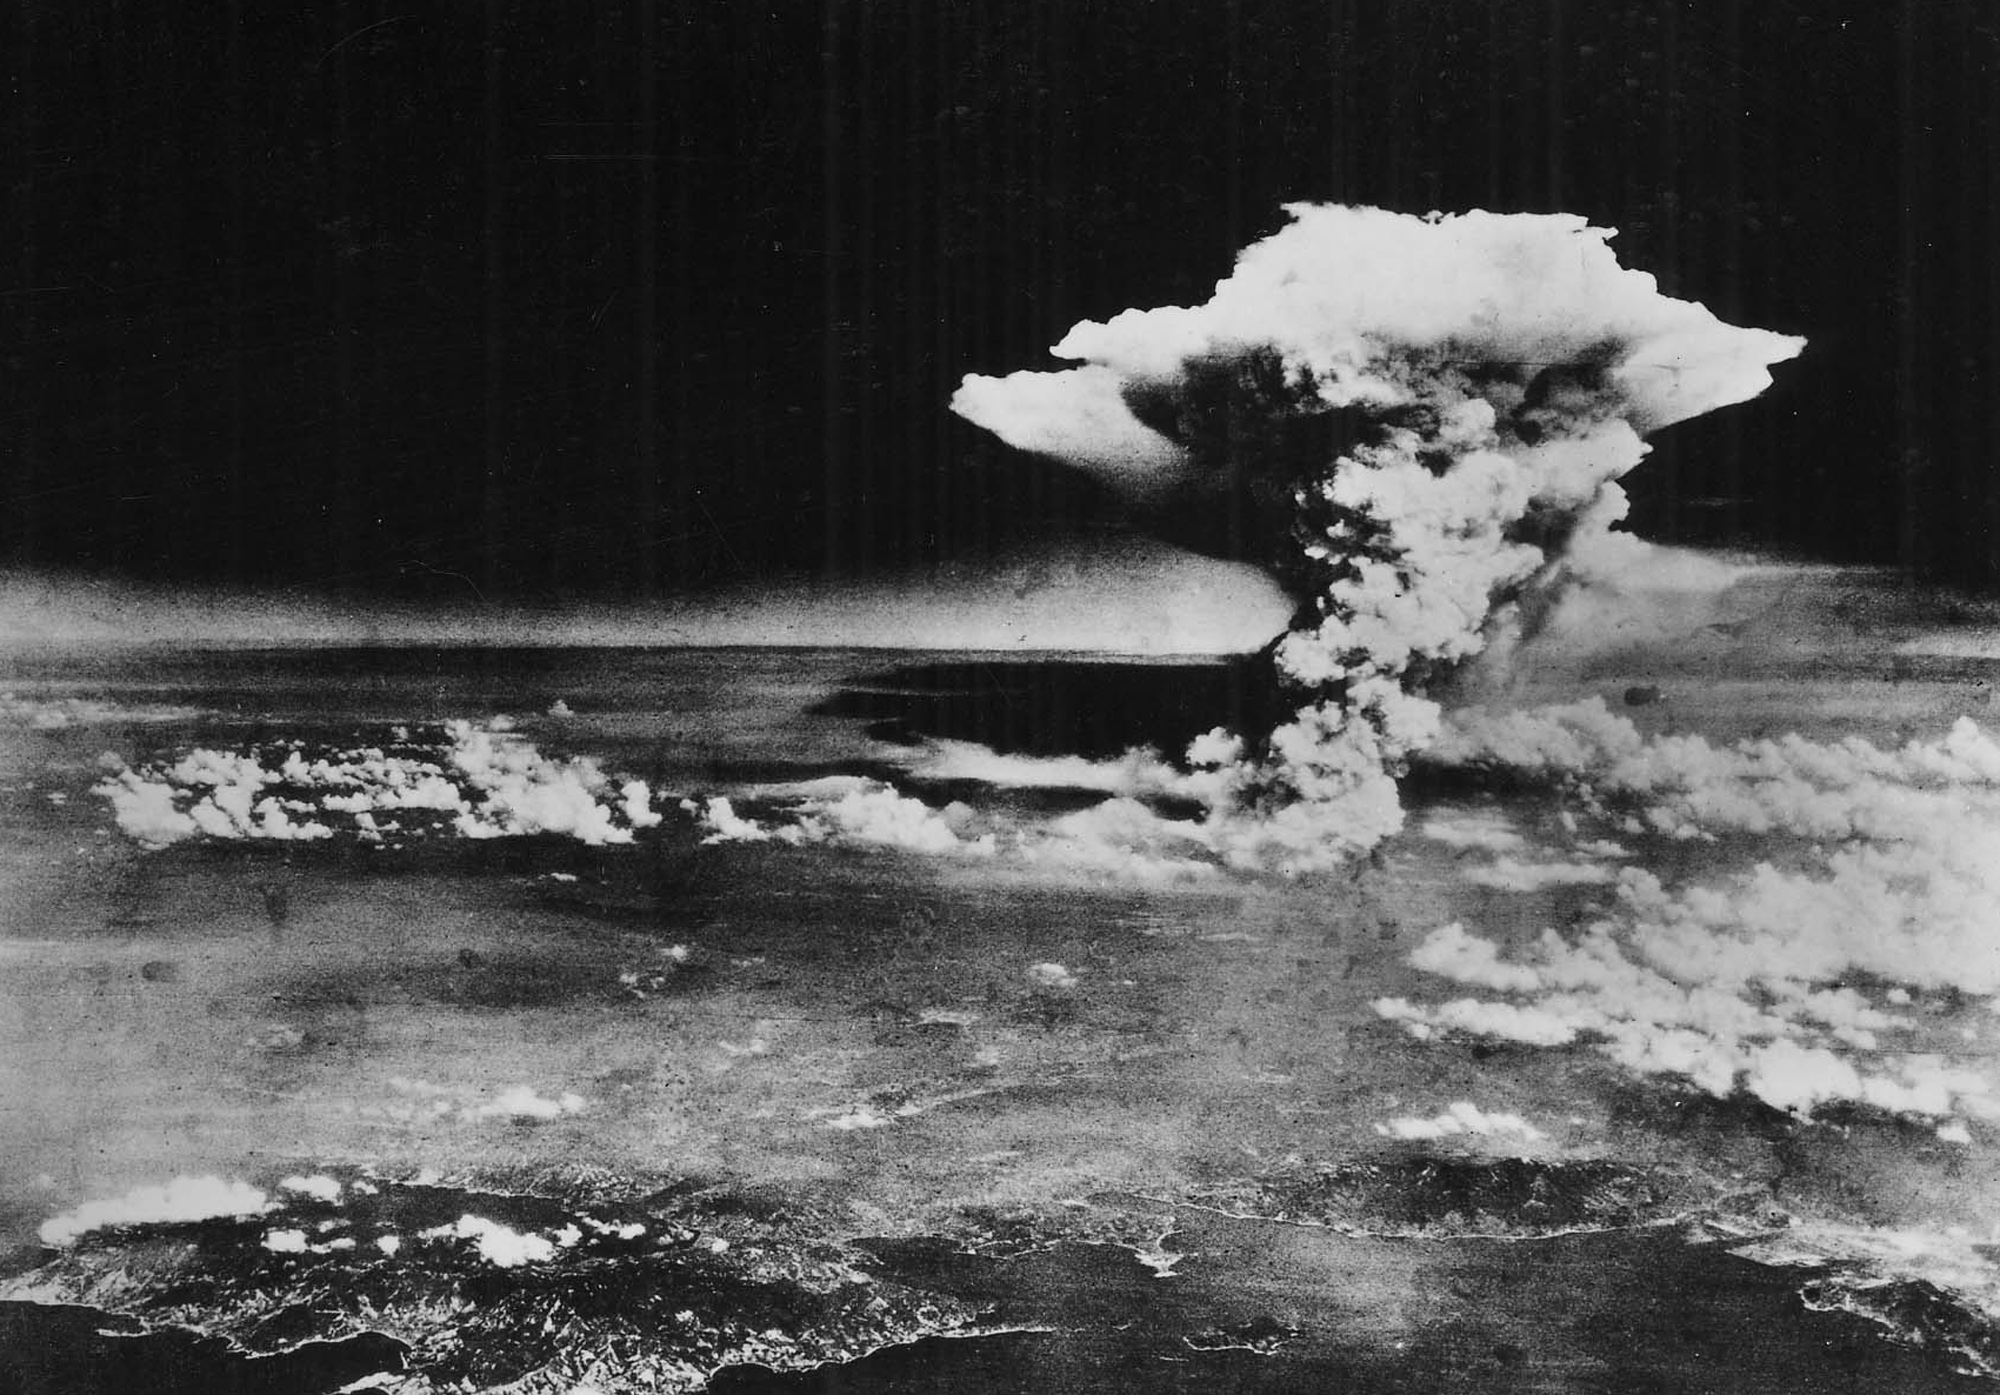 Taken From: https://upload.wikimedia.org/wikipedia/commons/8/8a/Atomic_cloud_over_Hiroshima_(from_Matsuyama).jpg